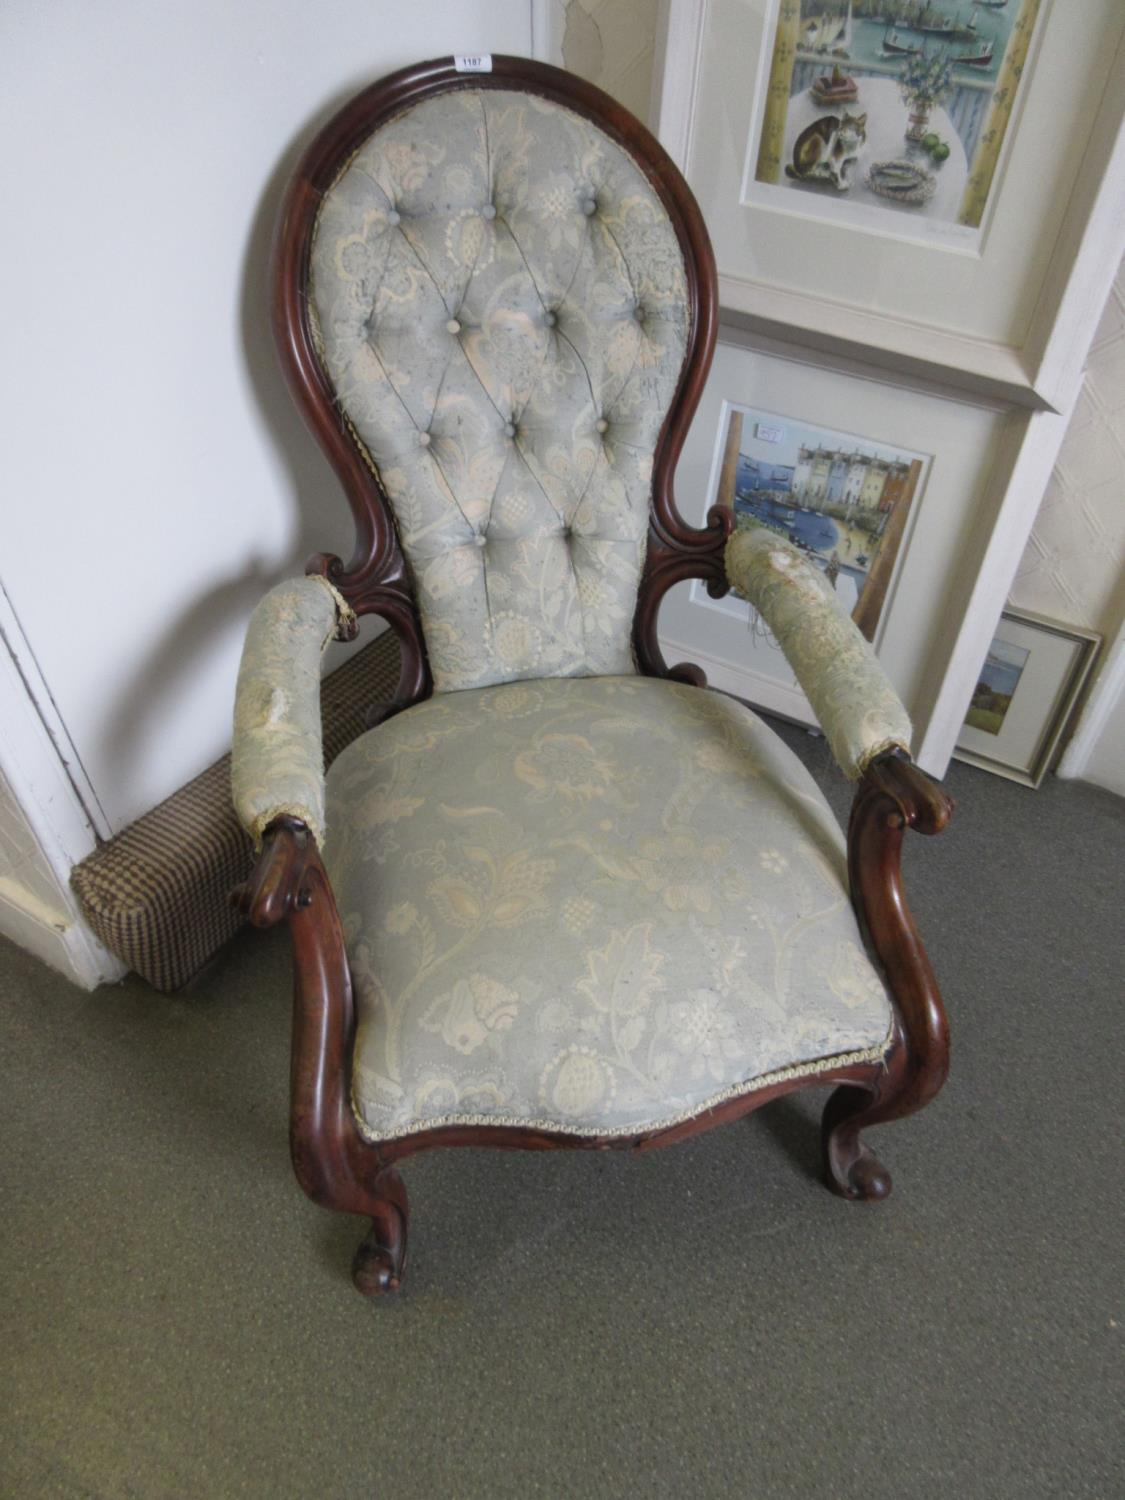 Victorian walnut button upholstered spoon back armchair having C-scroll carved arm supports and legs